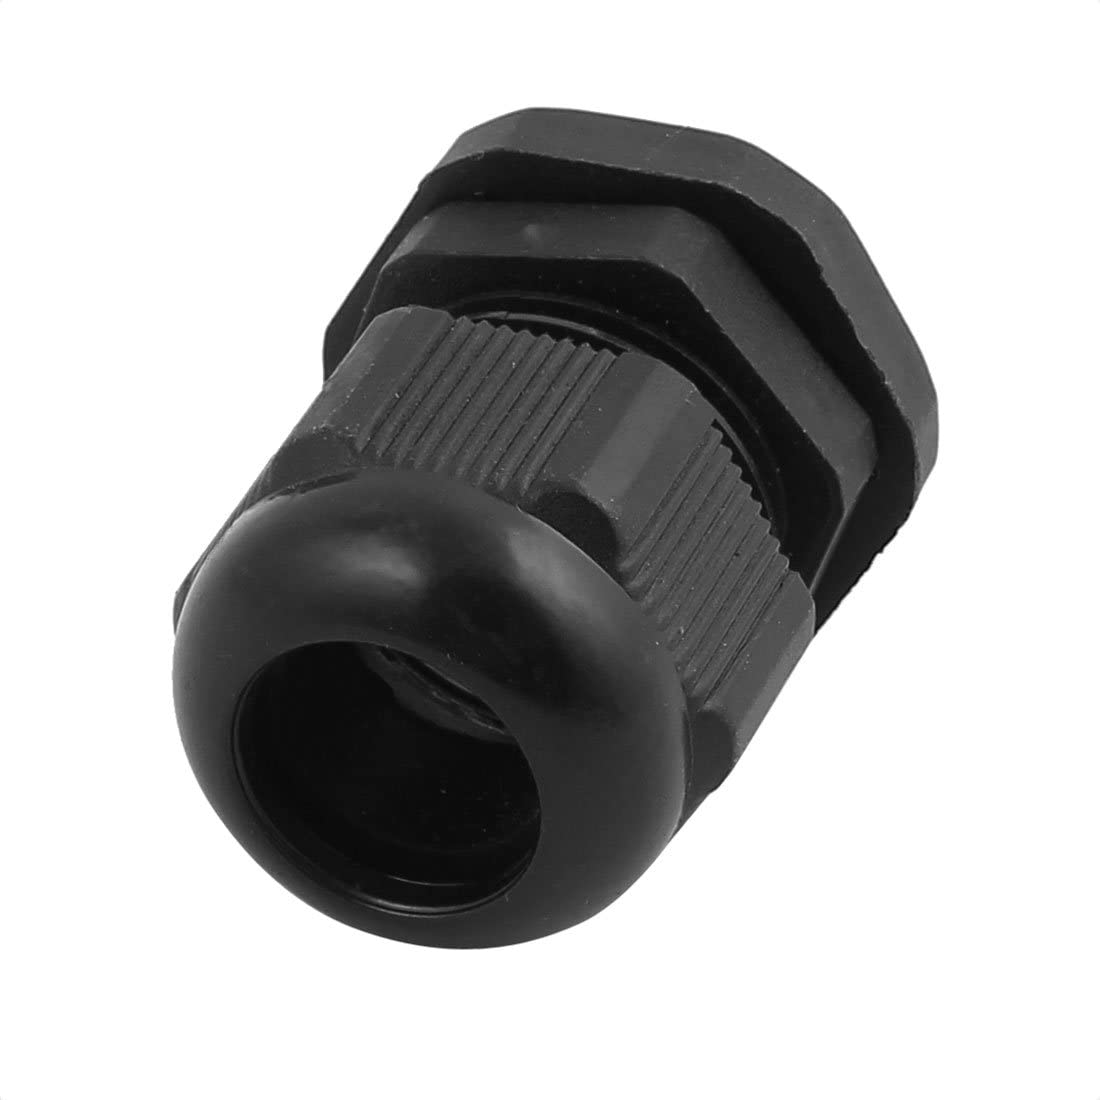 Aexit PG16 10-14mm Audio Video Accessories Over item handling 22mm New Free Shipping Plastic Thread